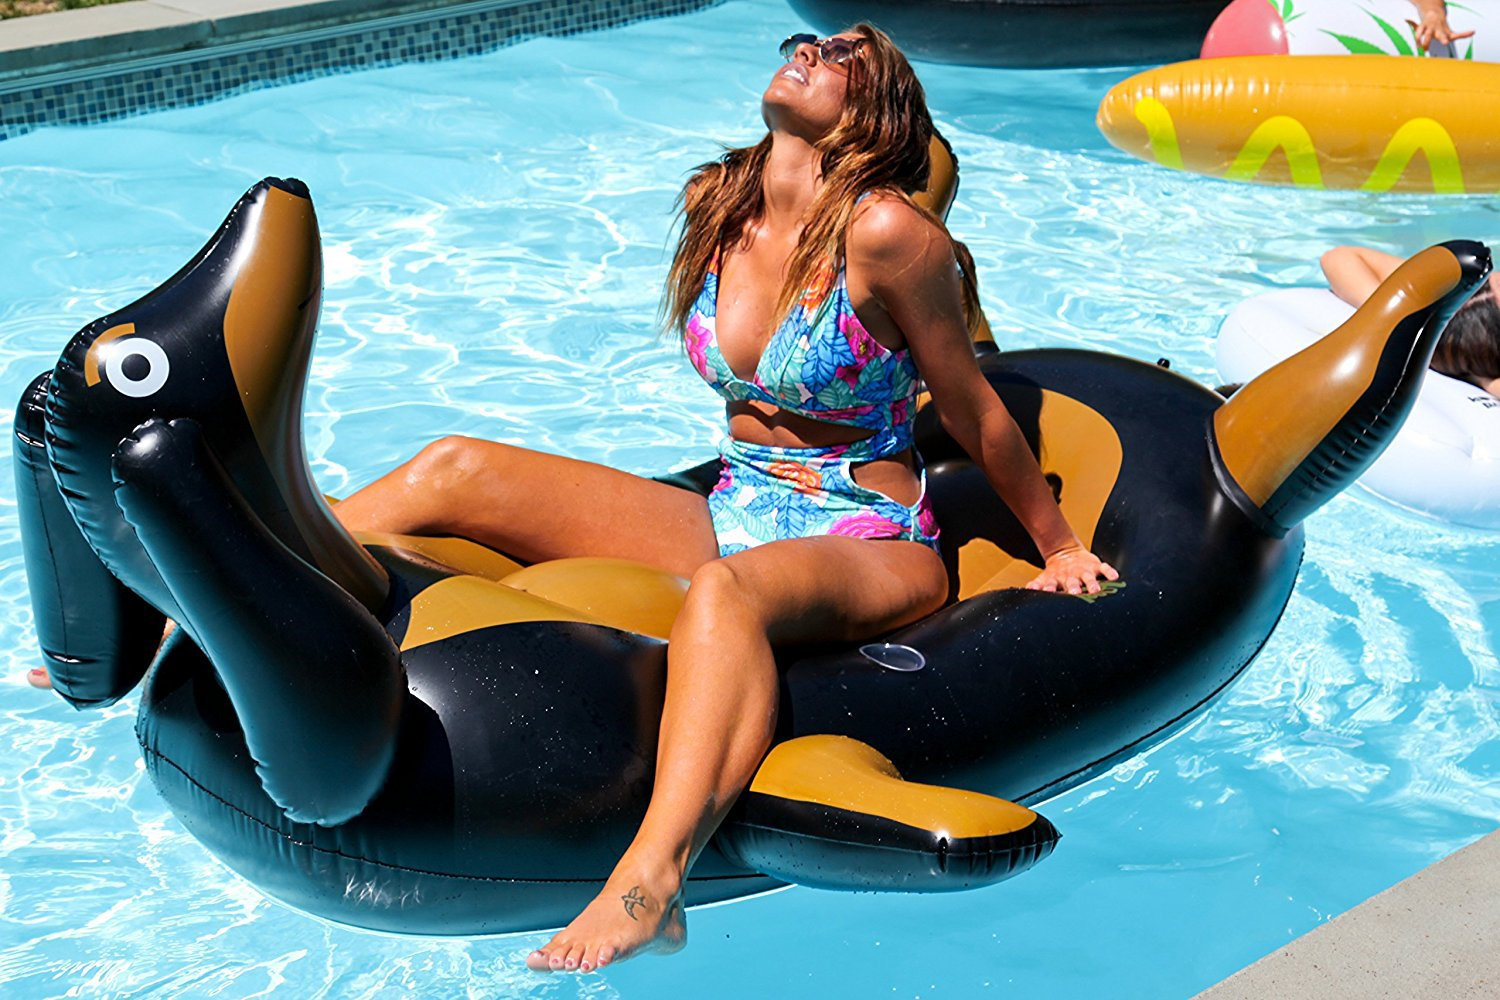 Kool Pool Pool Pup - Giant Premium Inflatable Dachshund Wiener Dog Doxie Sausage Dog Lounger Pool Float Mattress